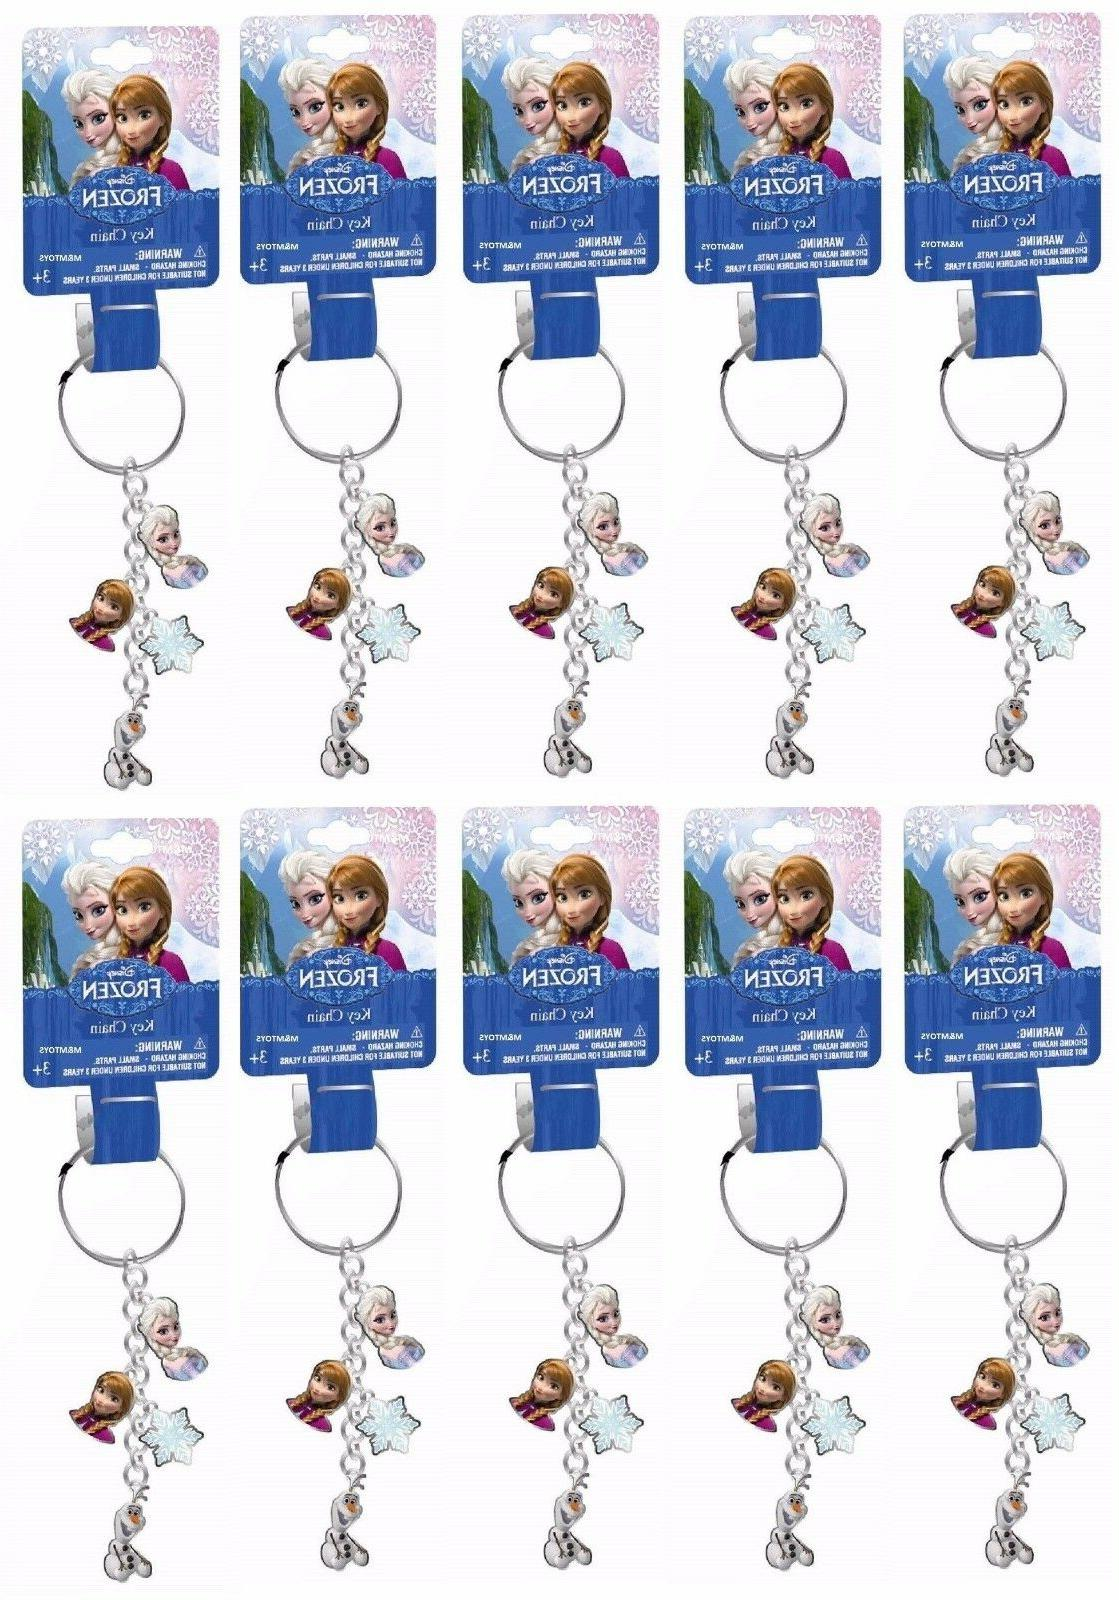 10x Disney Frozen  Anna Elsa Olaf Metal Keychain Charms Part